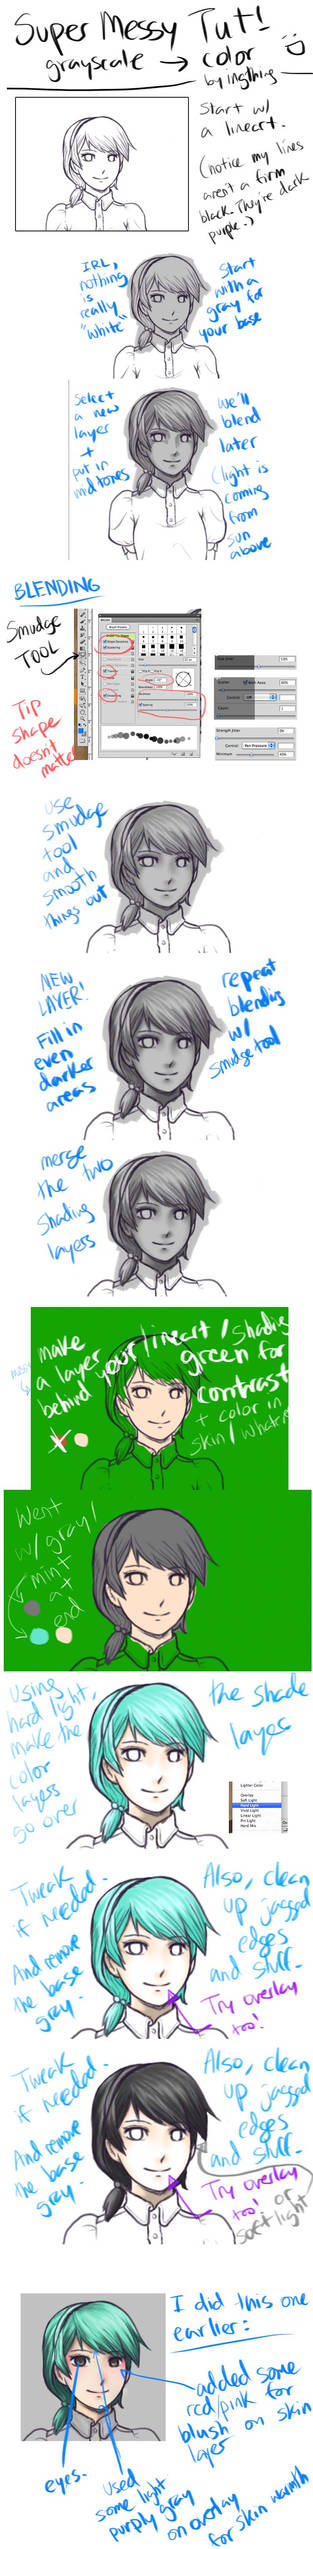 SUPER MESSY TUTORIAL Grayscale to Color